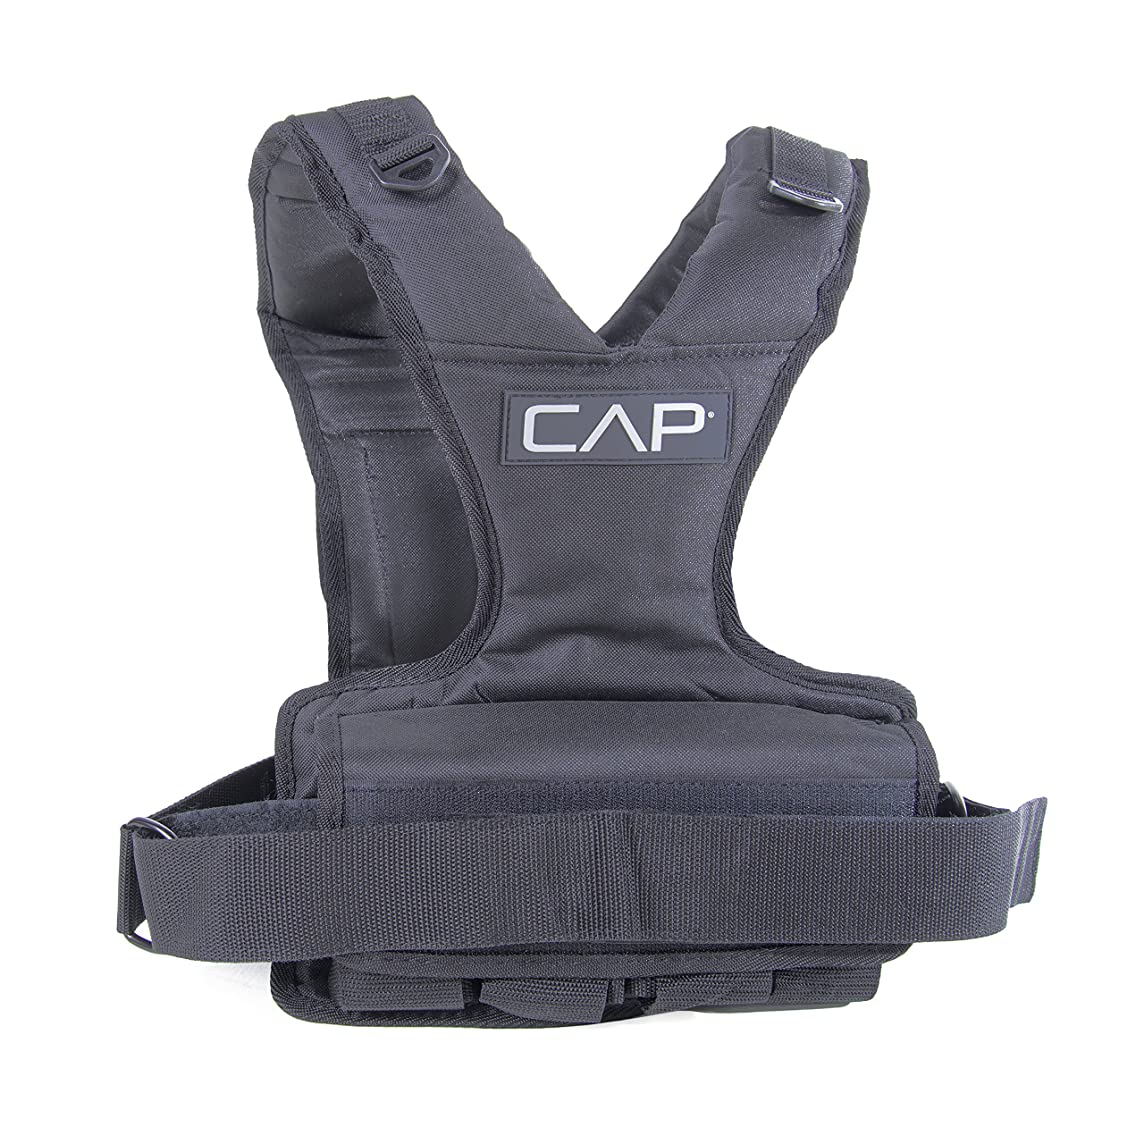 CAP Barbell Women's Weighted Vest, 30 Pound